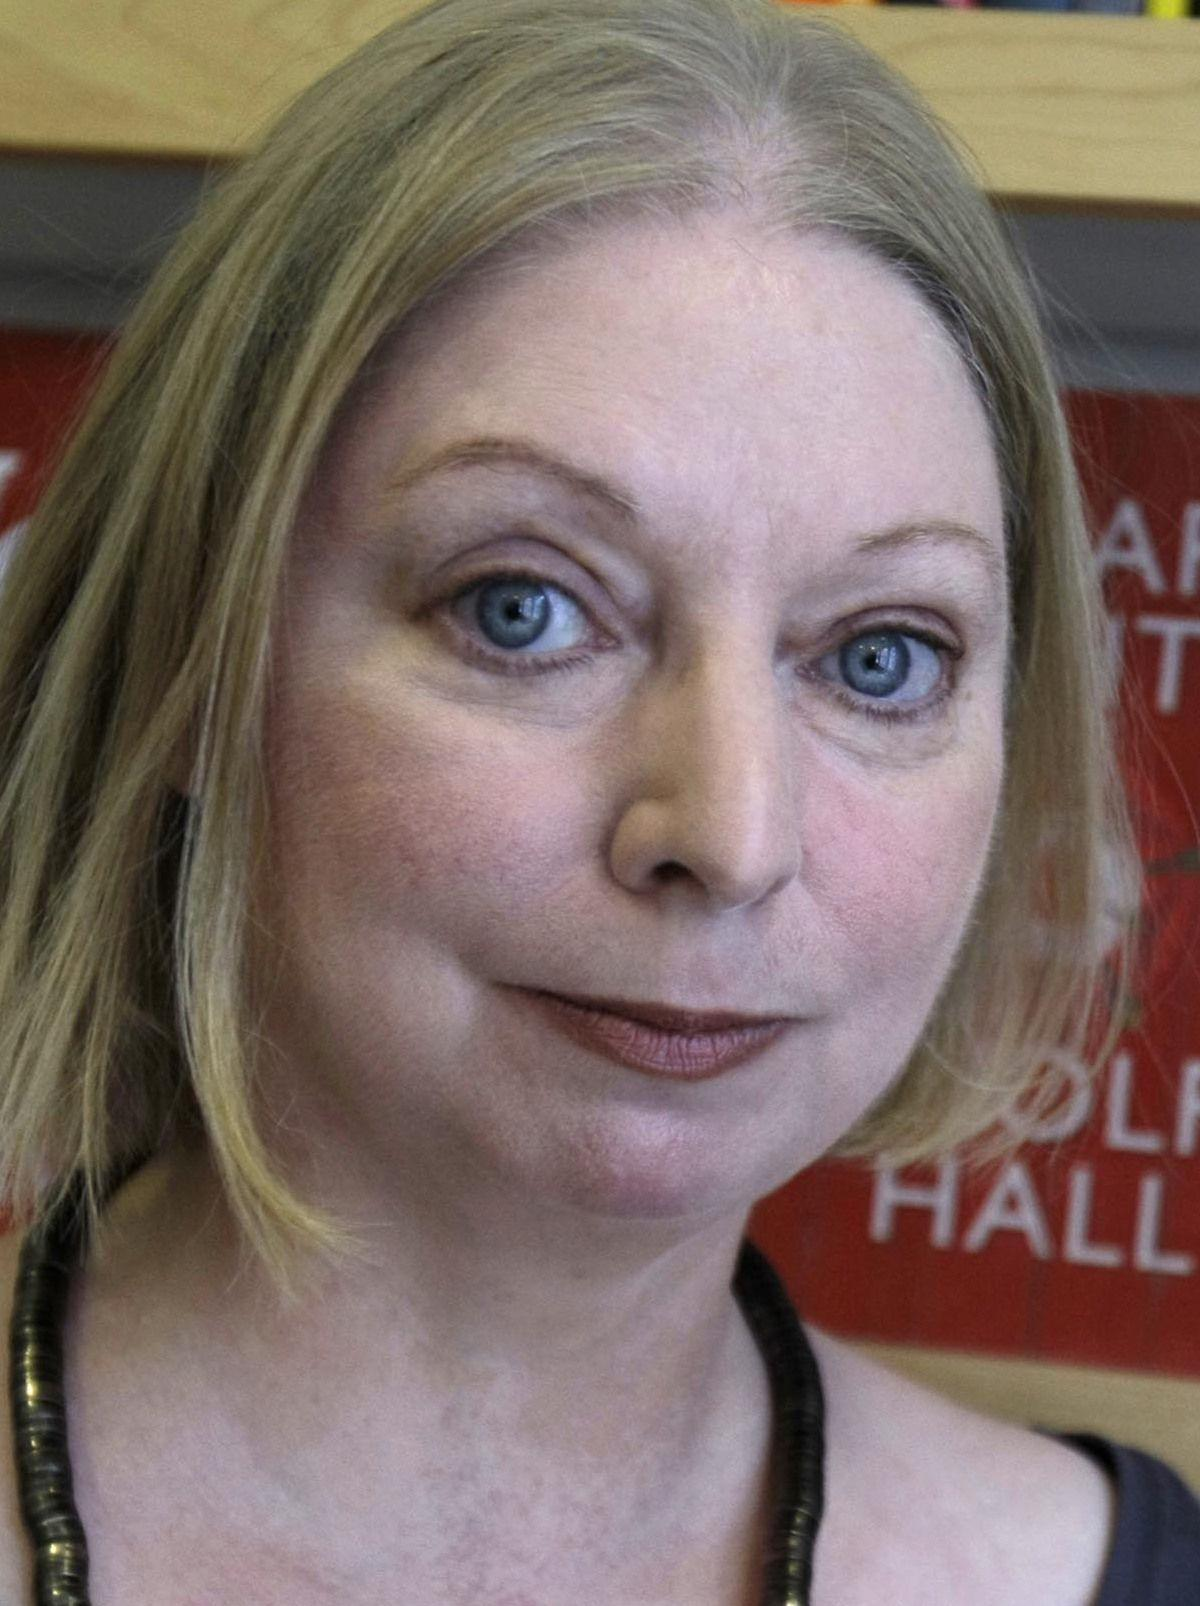 Hilary Mantel leads race for Booker Prize